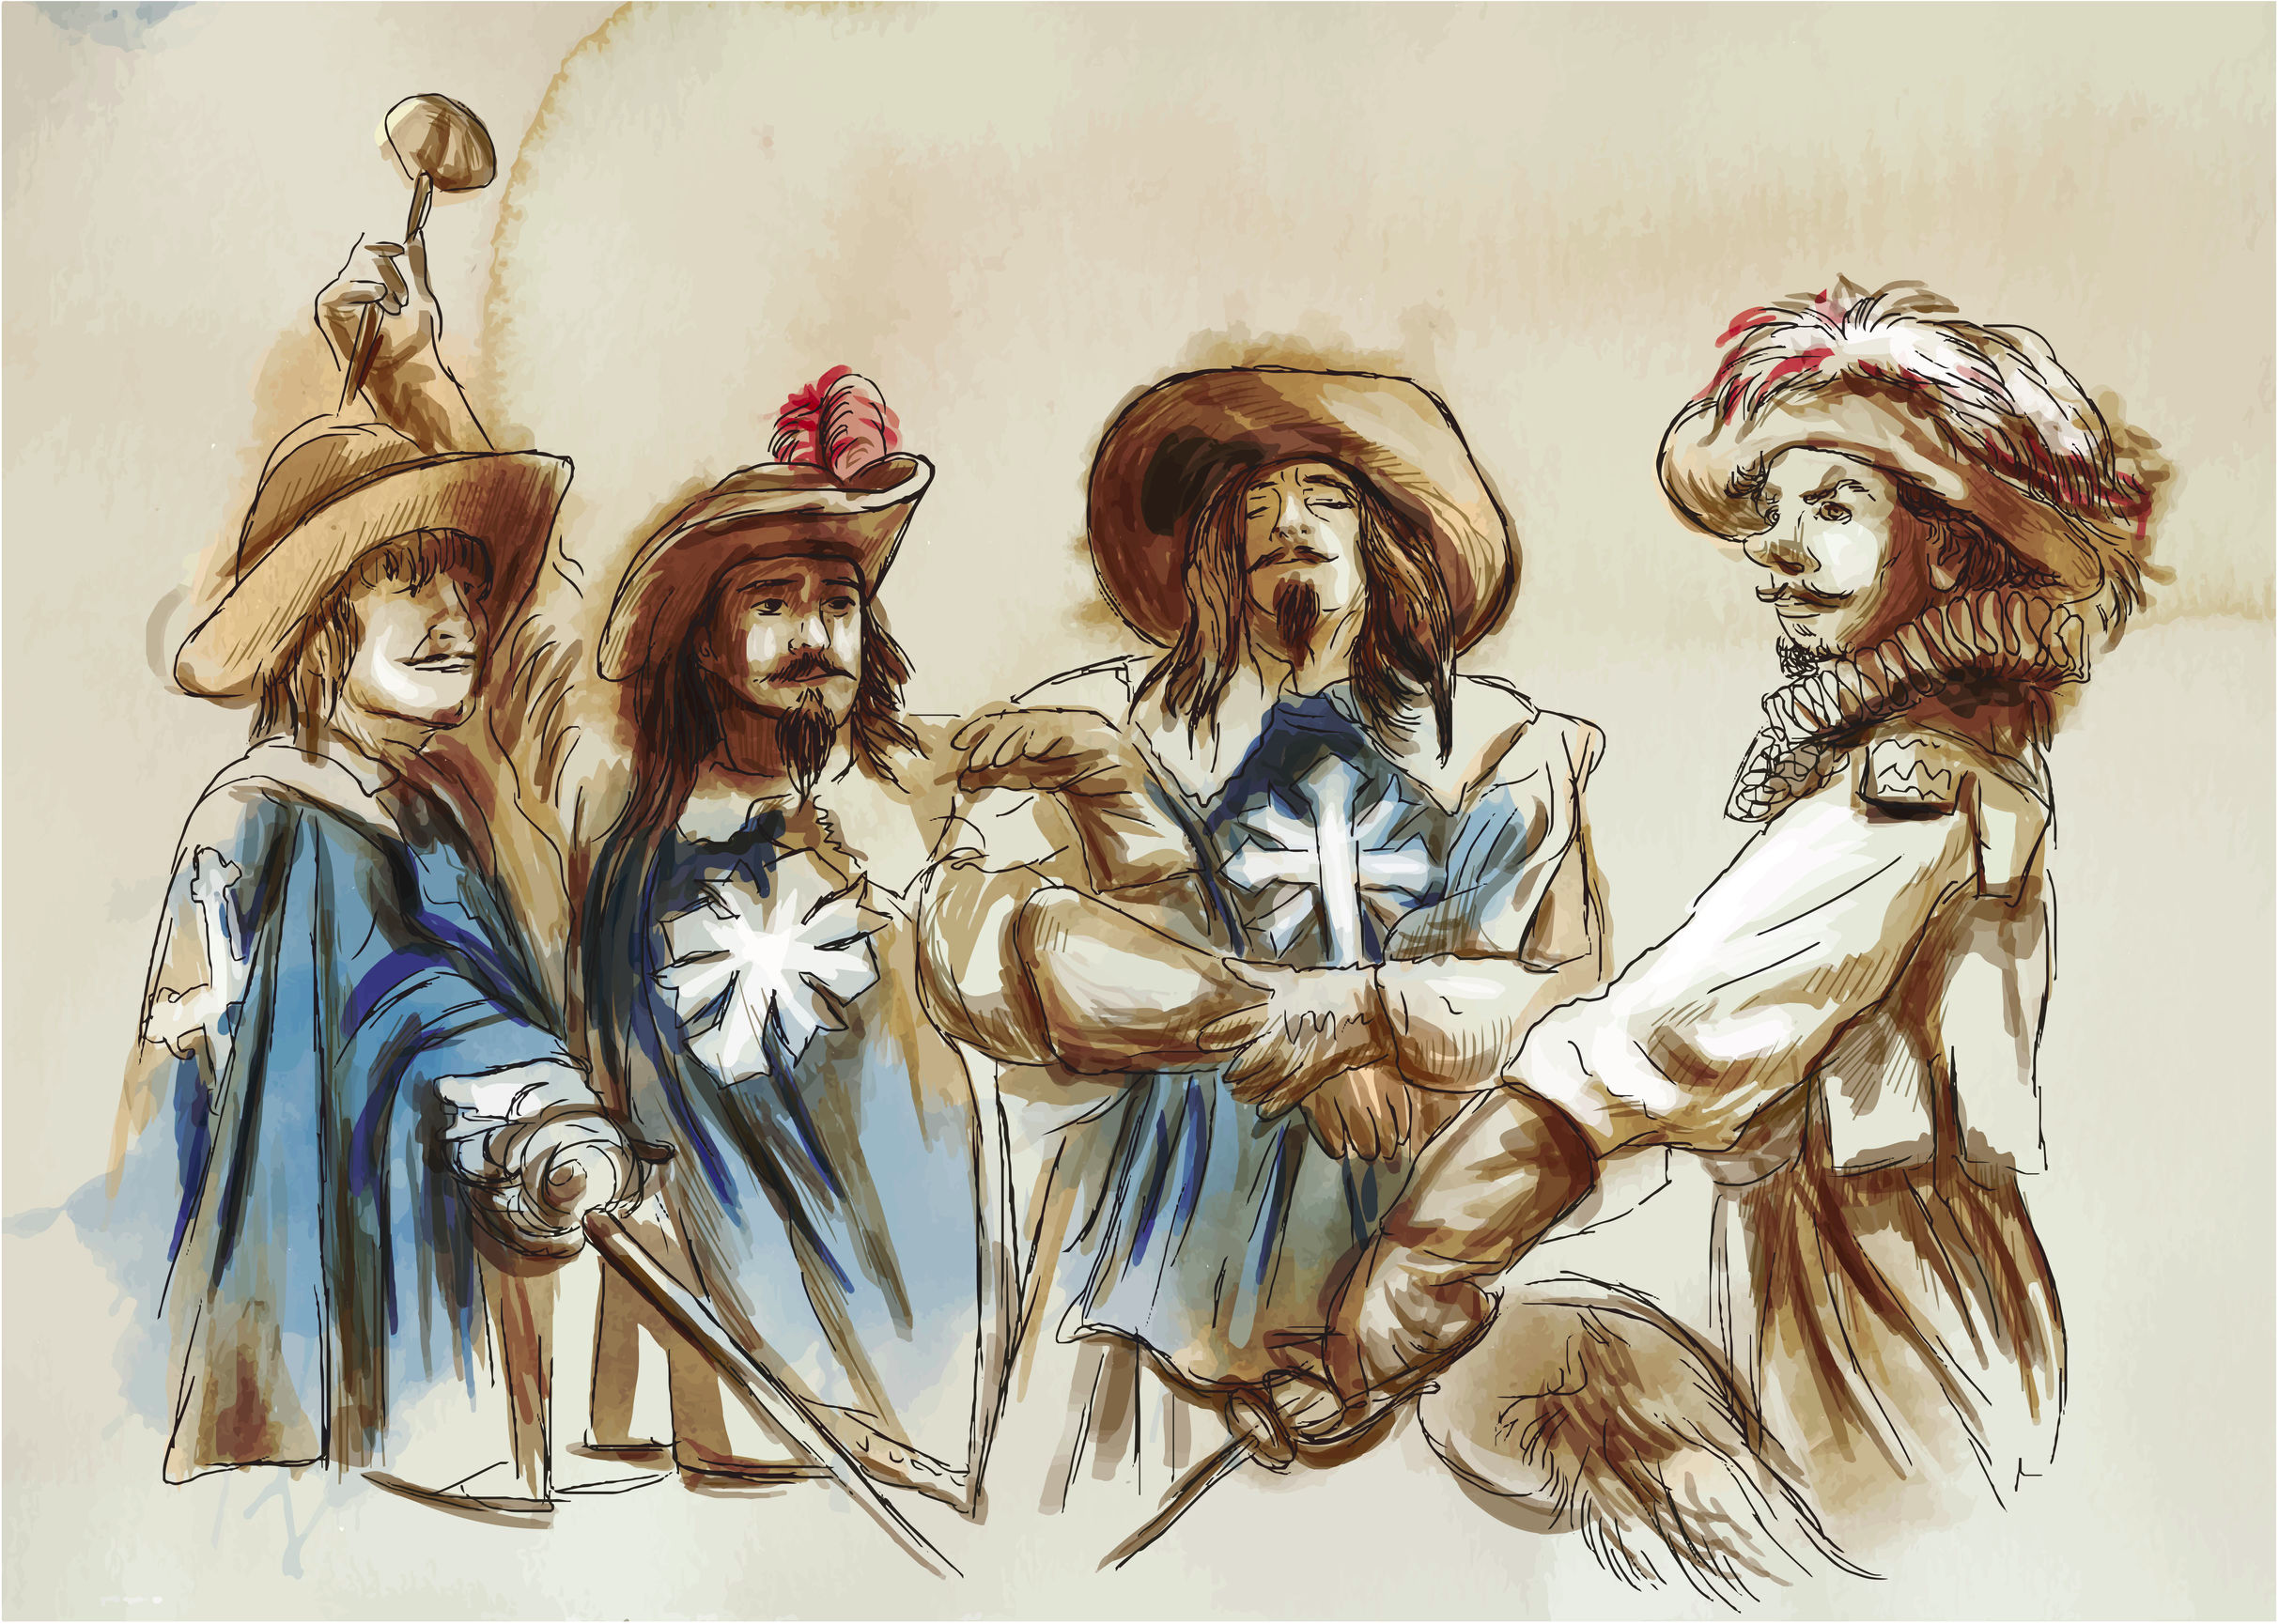 The Three Musketeers. An hand drawn illustration.